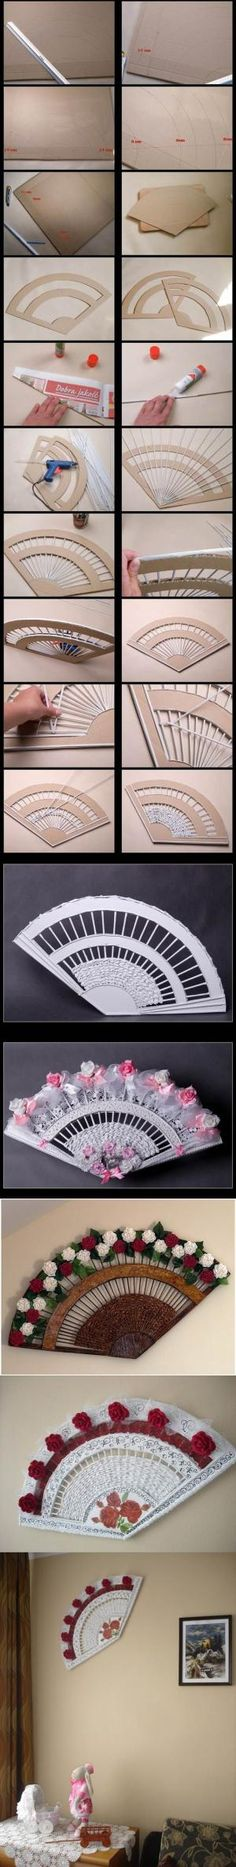 DIY Decorative Fan from Old Newspaper and Cardboard 2 by minnie